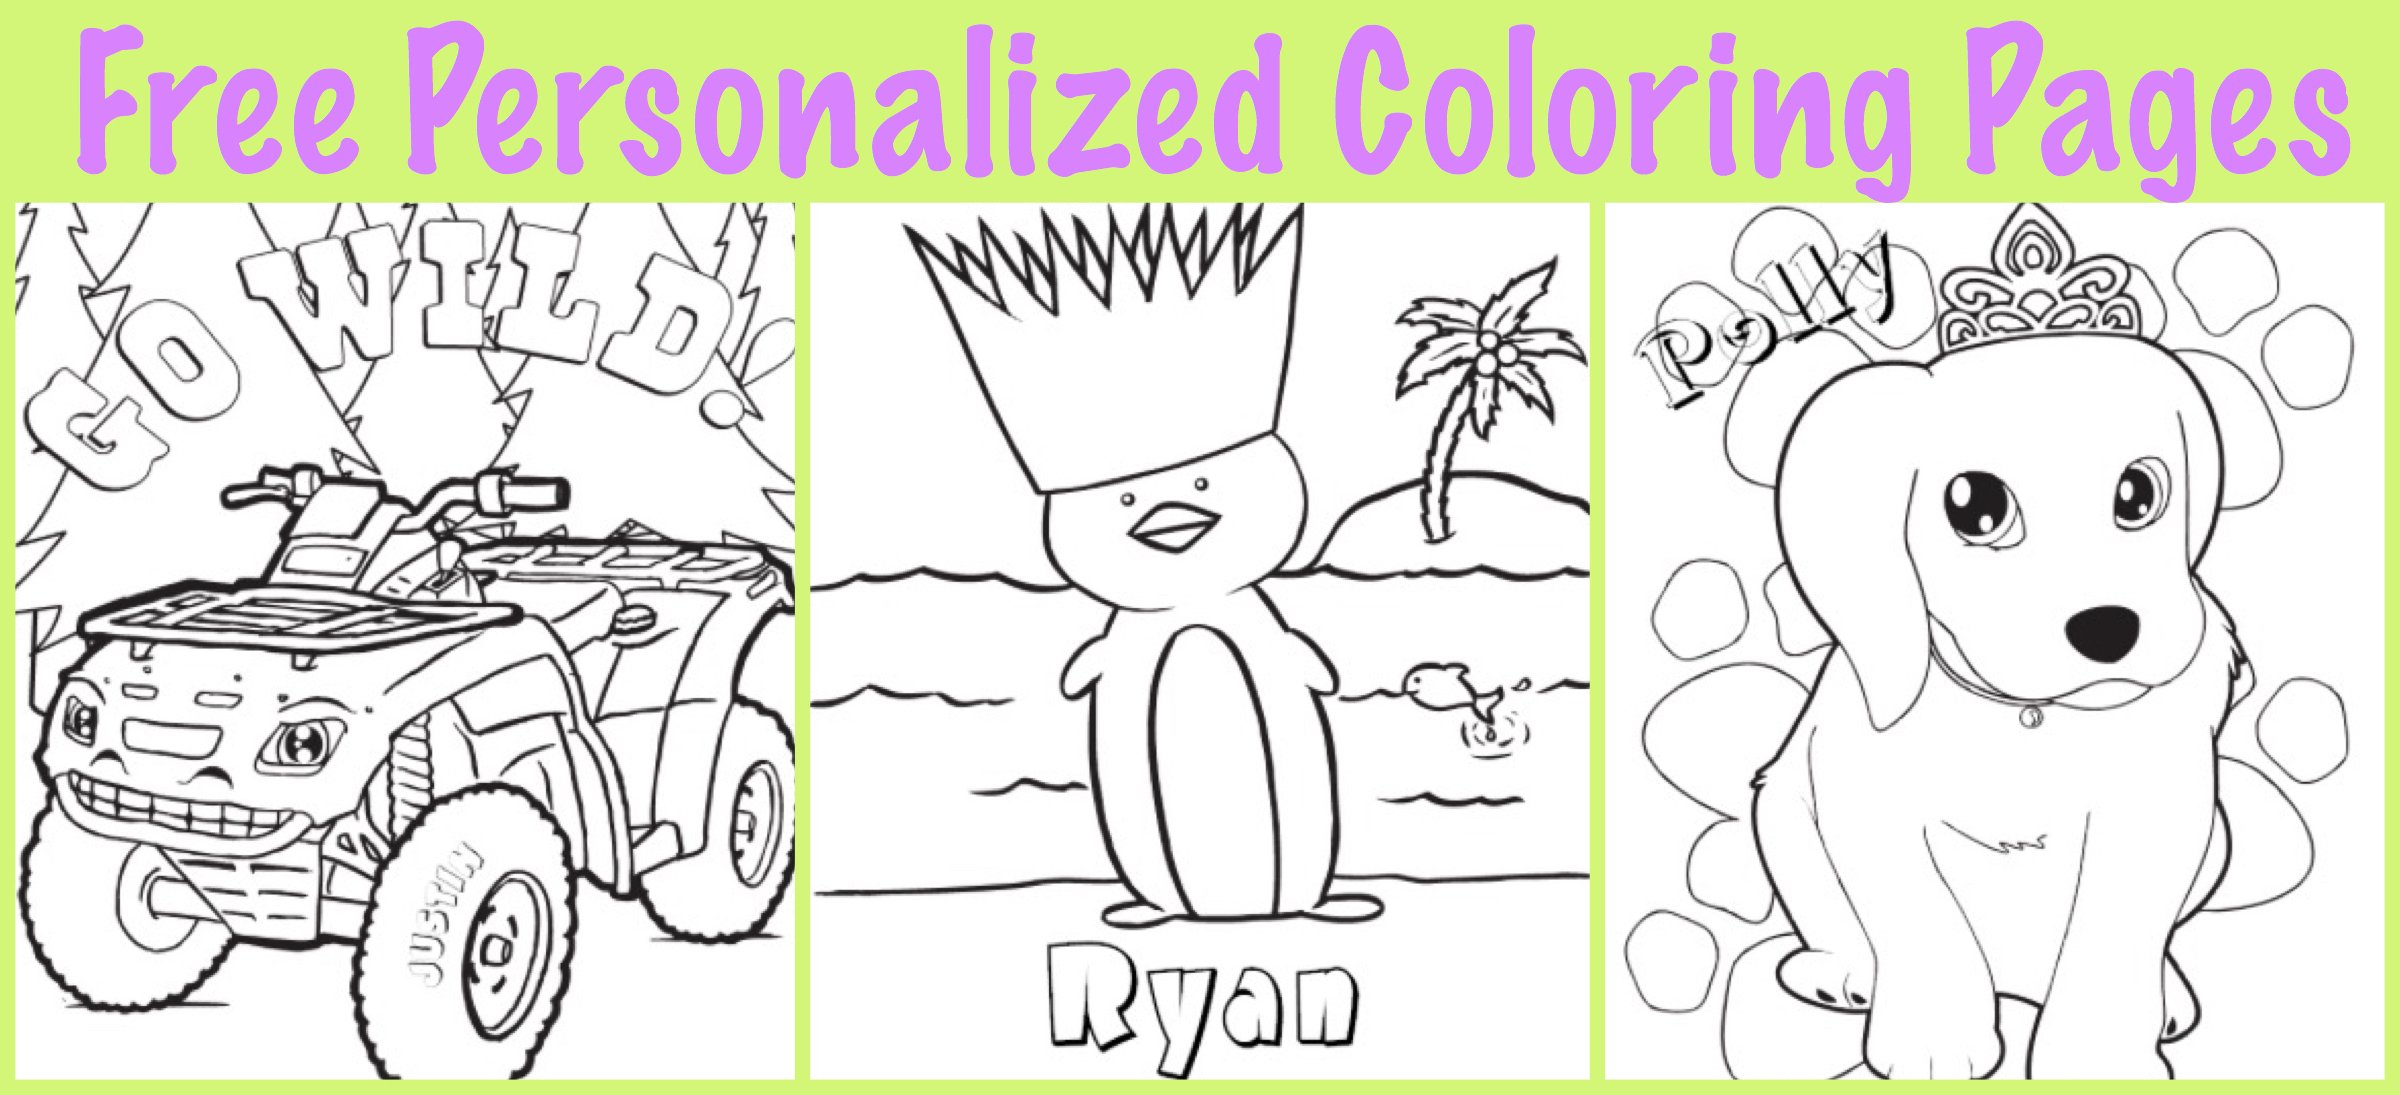 Free Personalized Coloring Pages